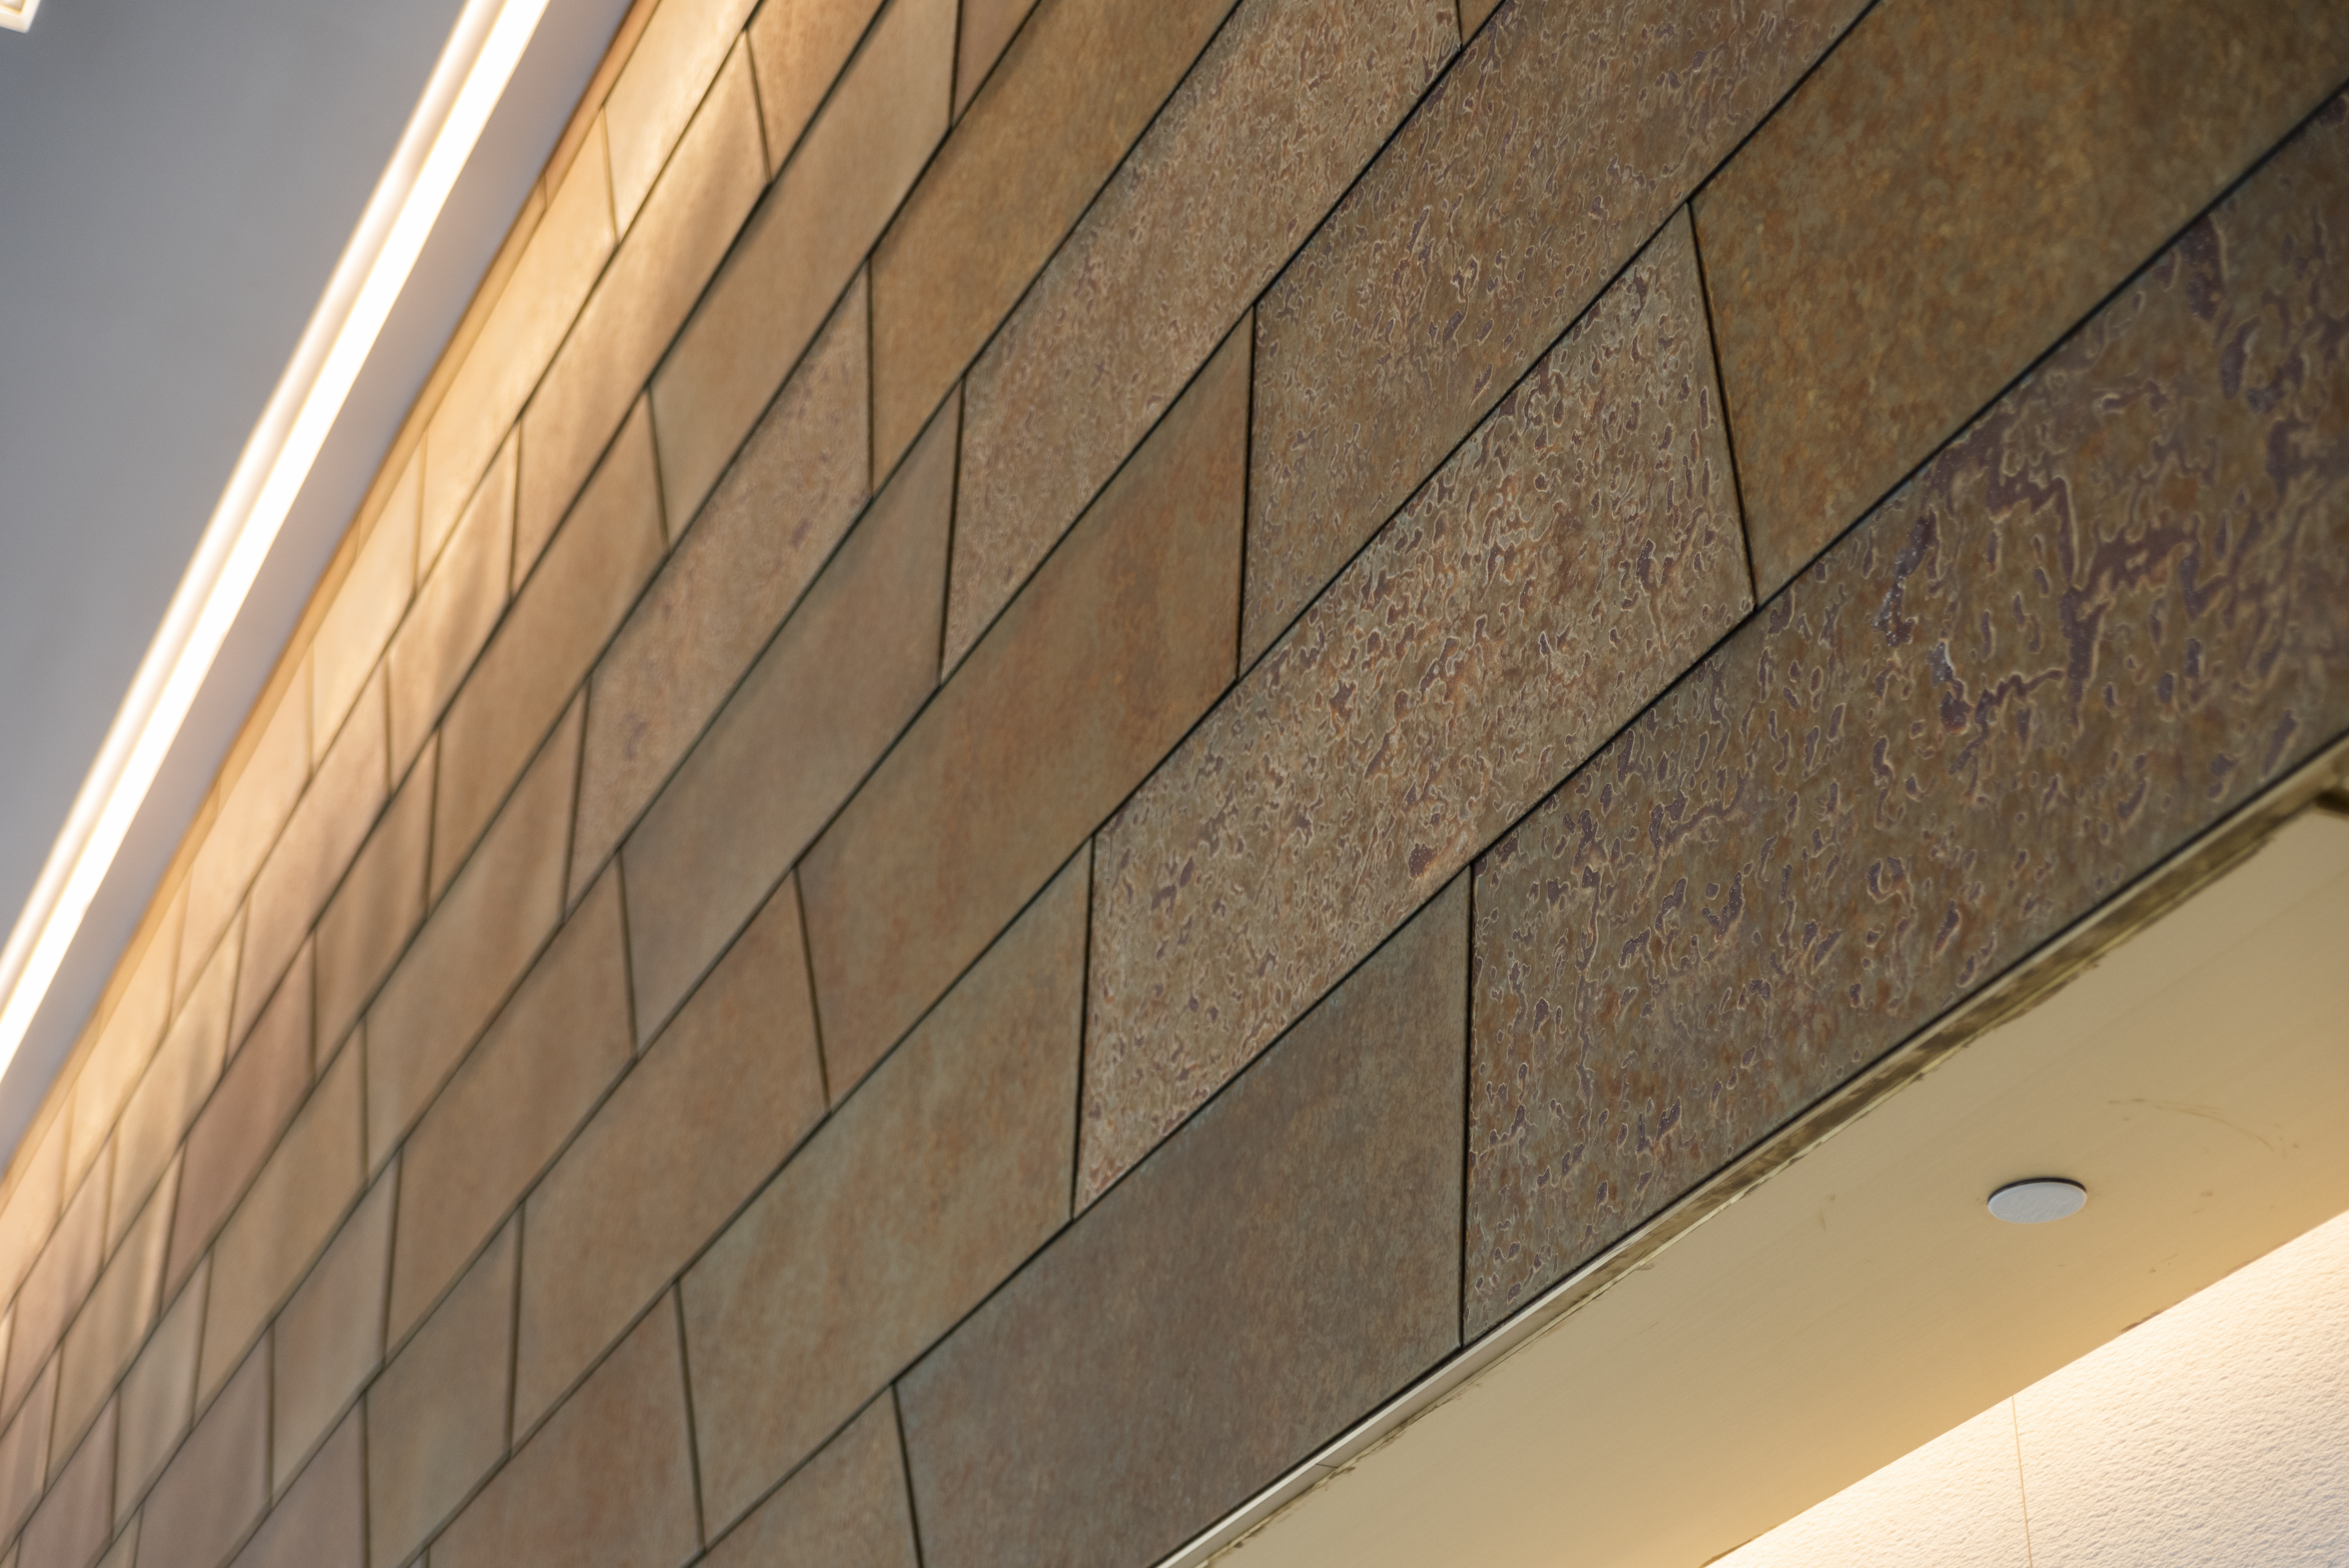 Roano Zinc panels were manufactured and installed by Zahner in the lobby of 2100 L Street.